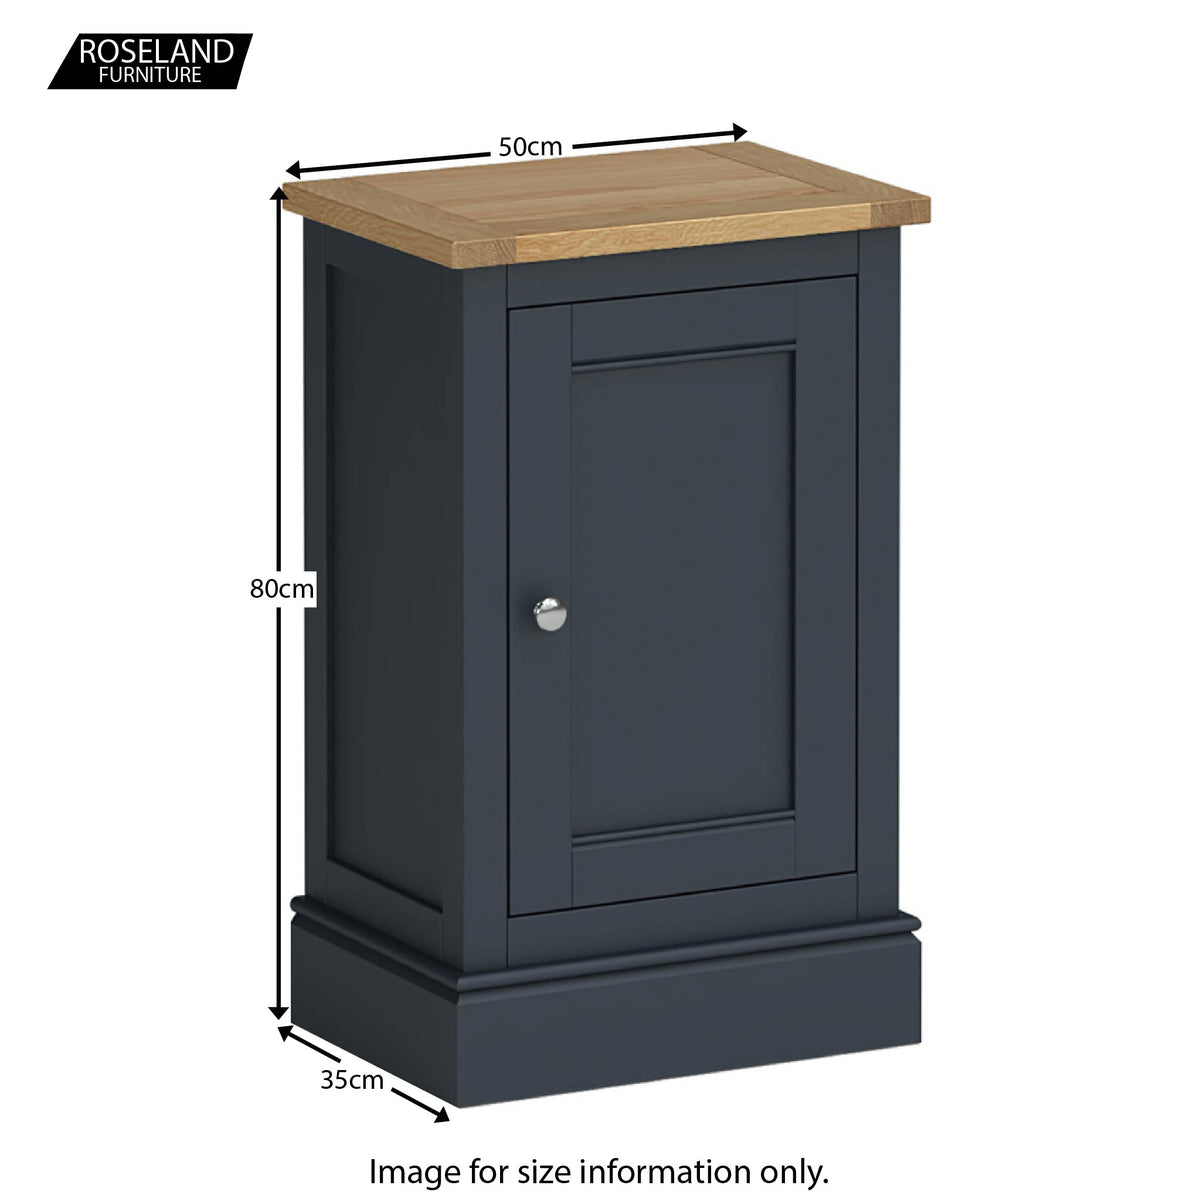 Chichester Mini Cupboard in Charcoal  - Size Guide